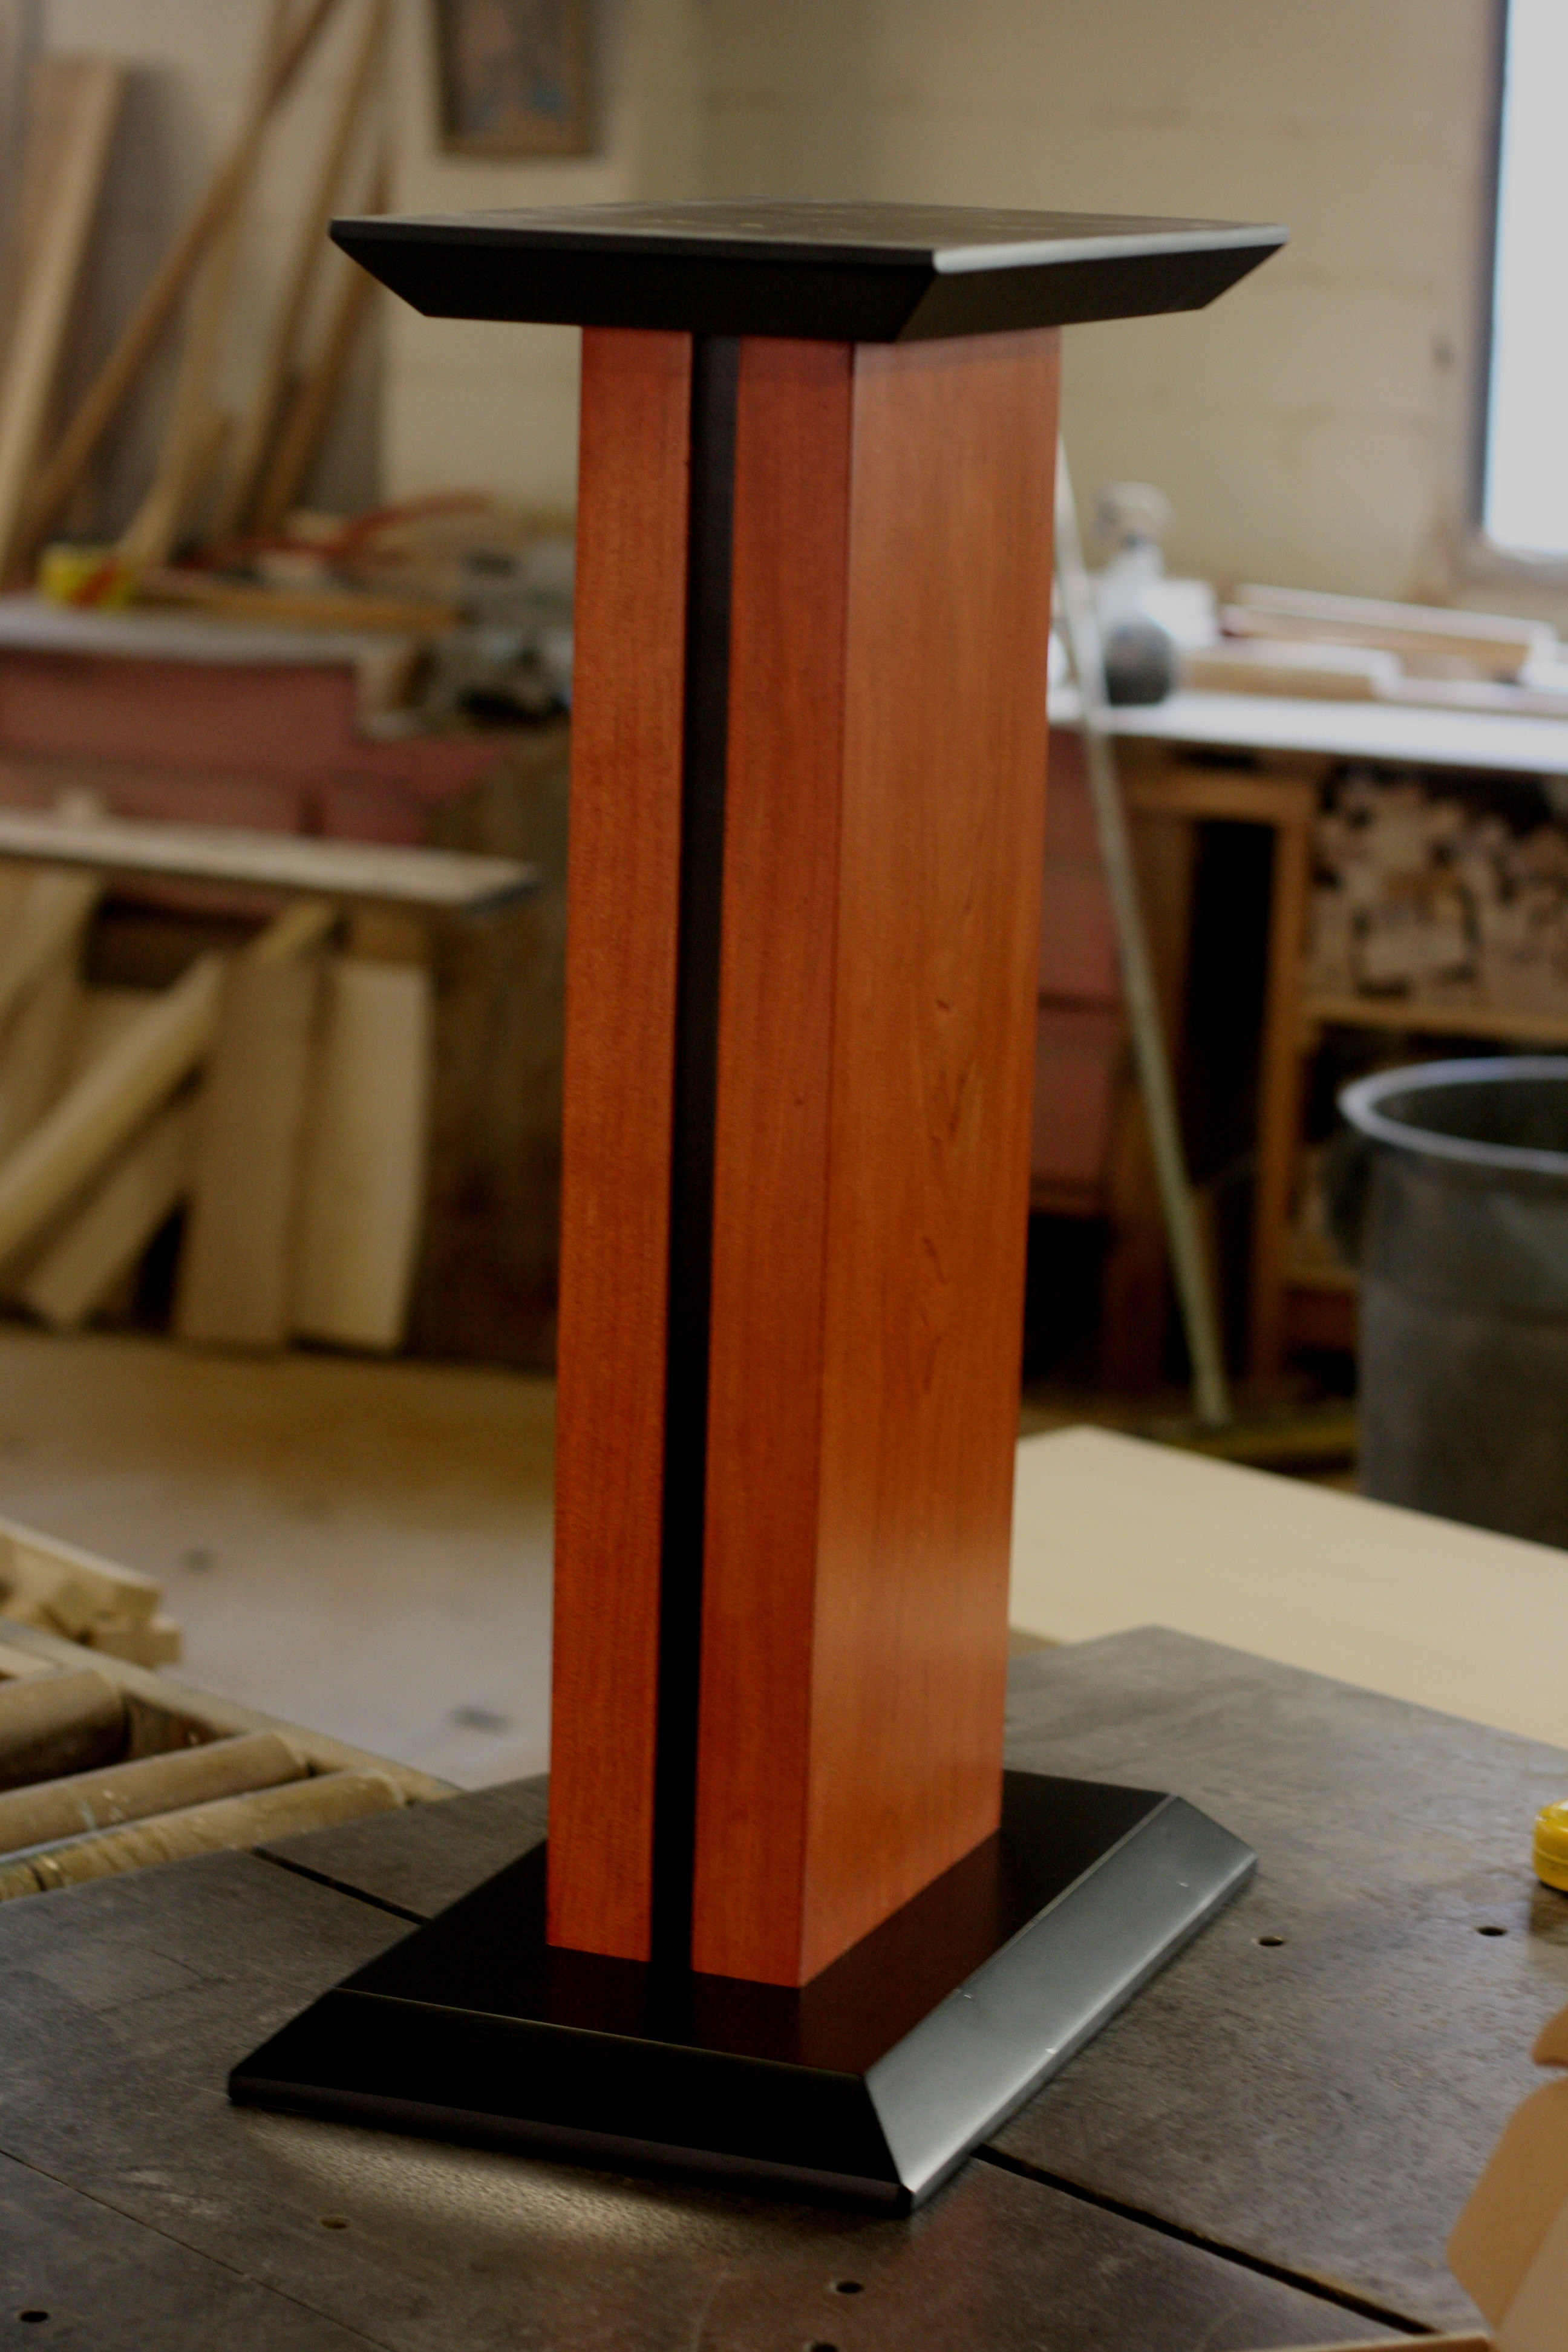 Maple with Dark Cherry stain and Black Top, Stripe, and Base